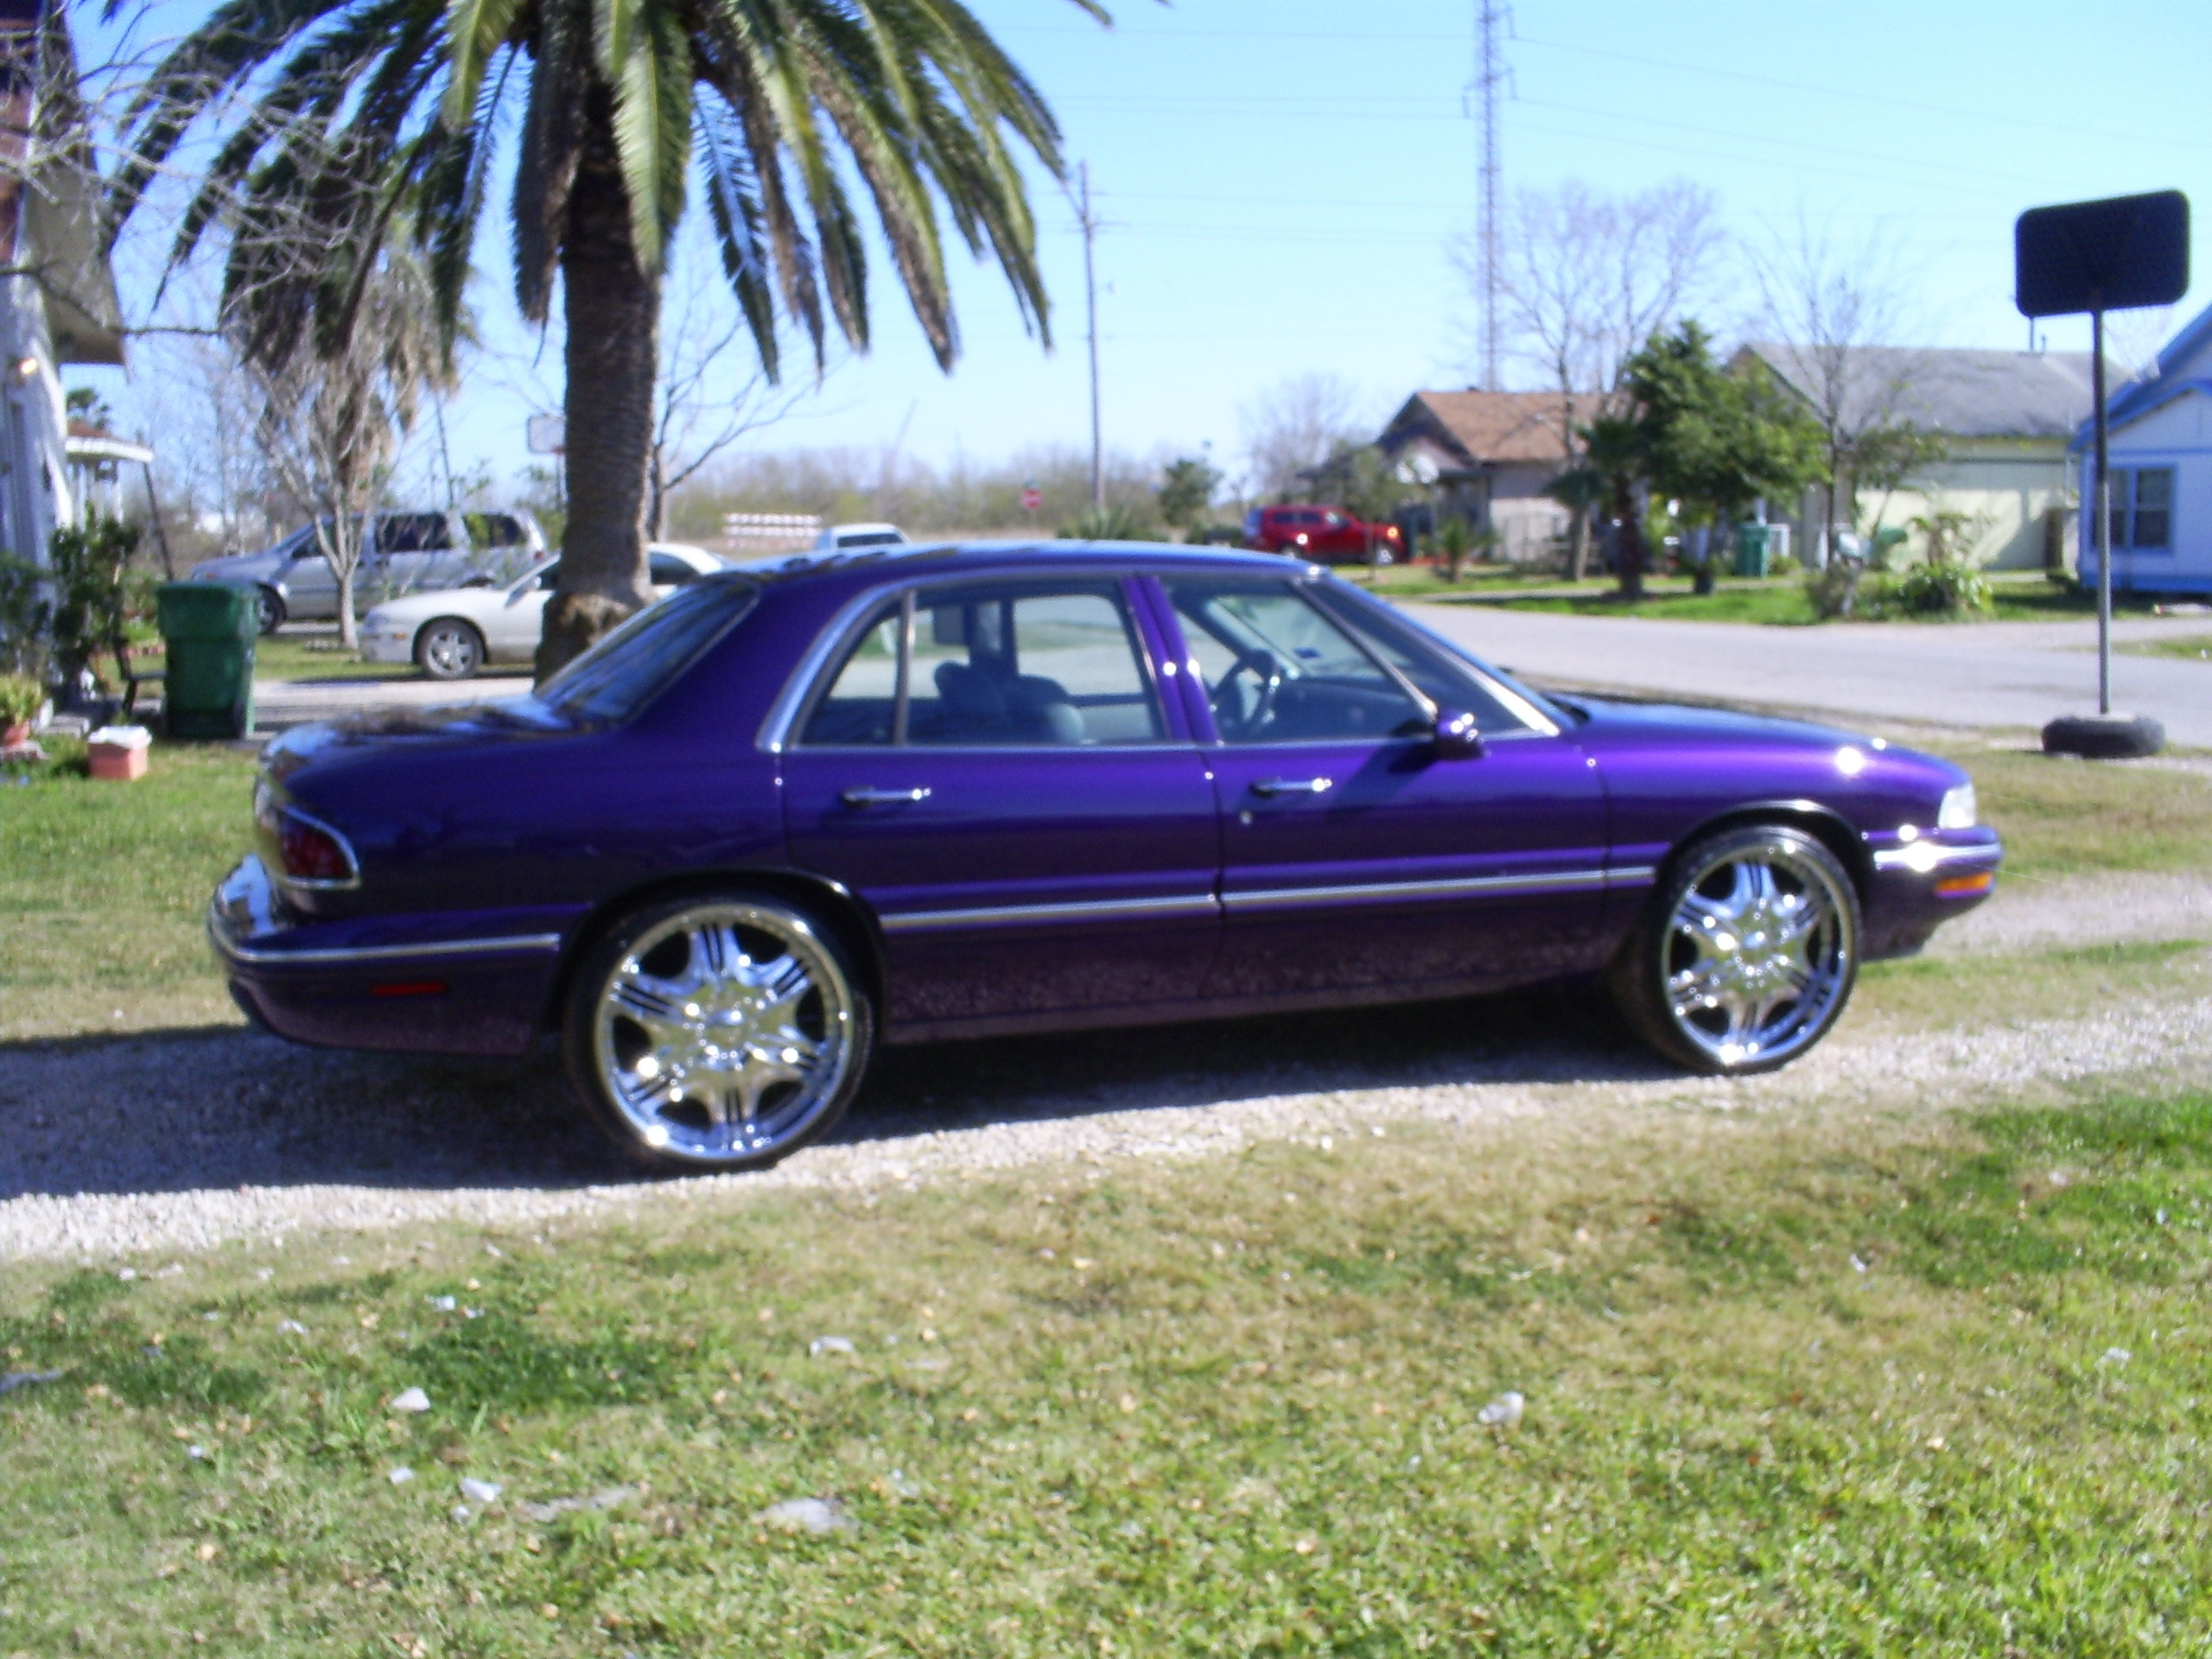 1998 buick lesabre information and photos zombiedrive 1998 buick lesabre 8 buick lesabre 8 sciox Images